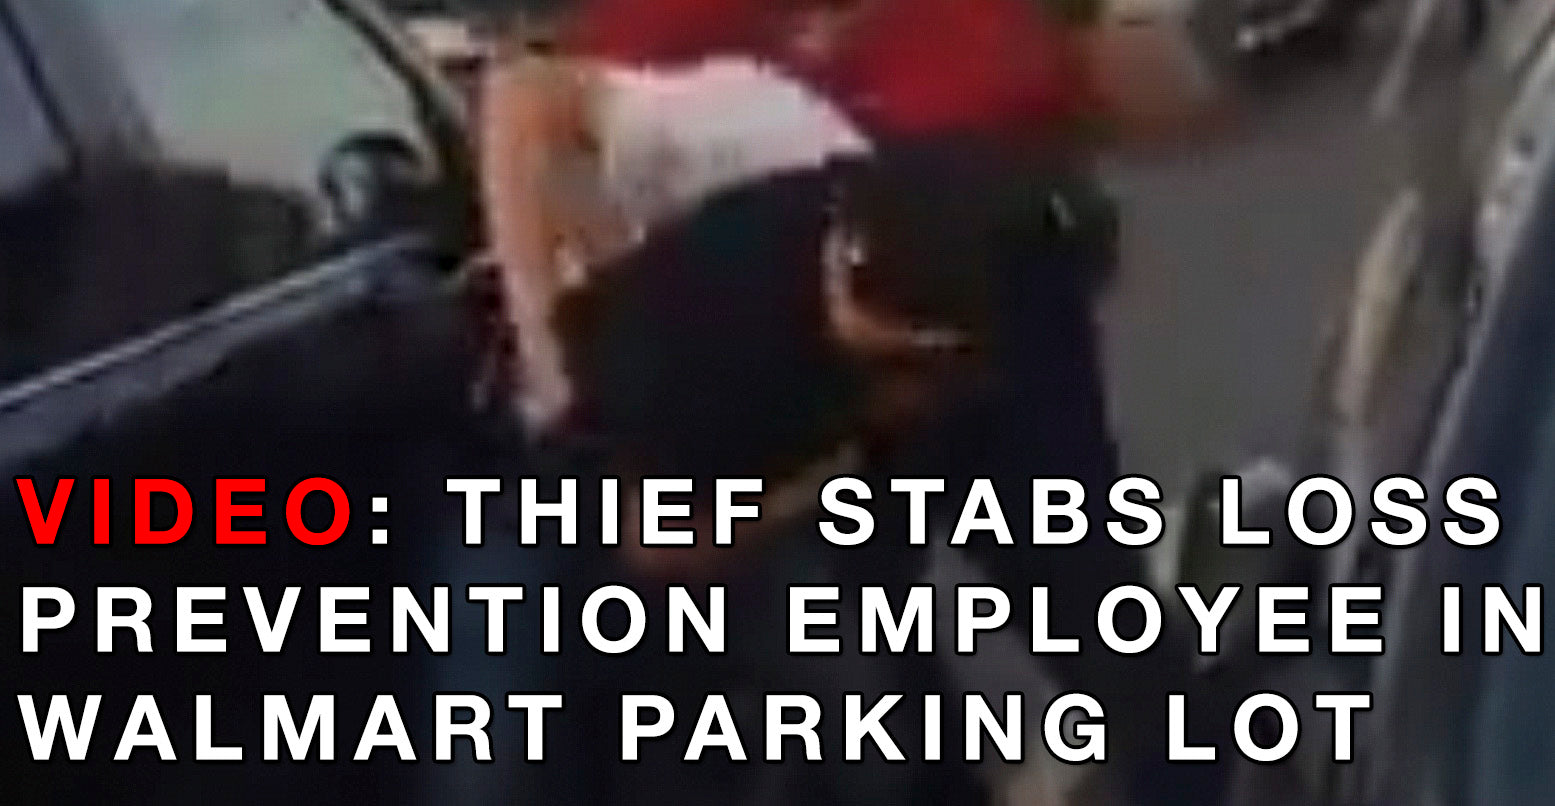 VIDEO: Thief Stabs Loss Prevention Employee In Walmart Parking Lot